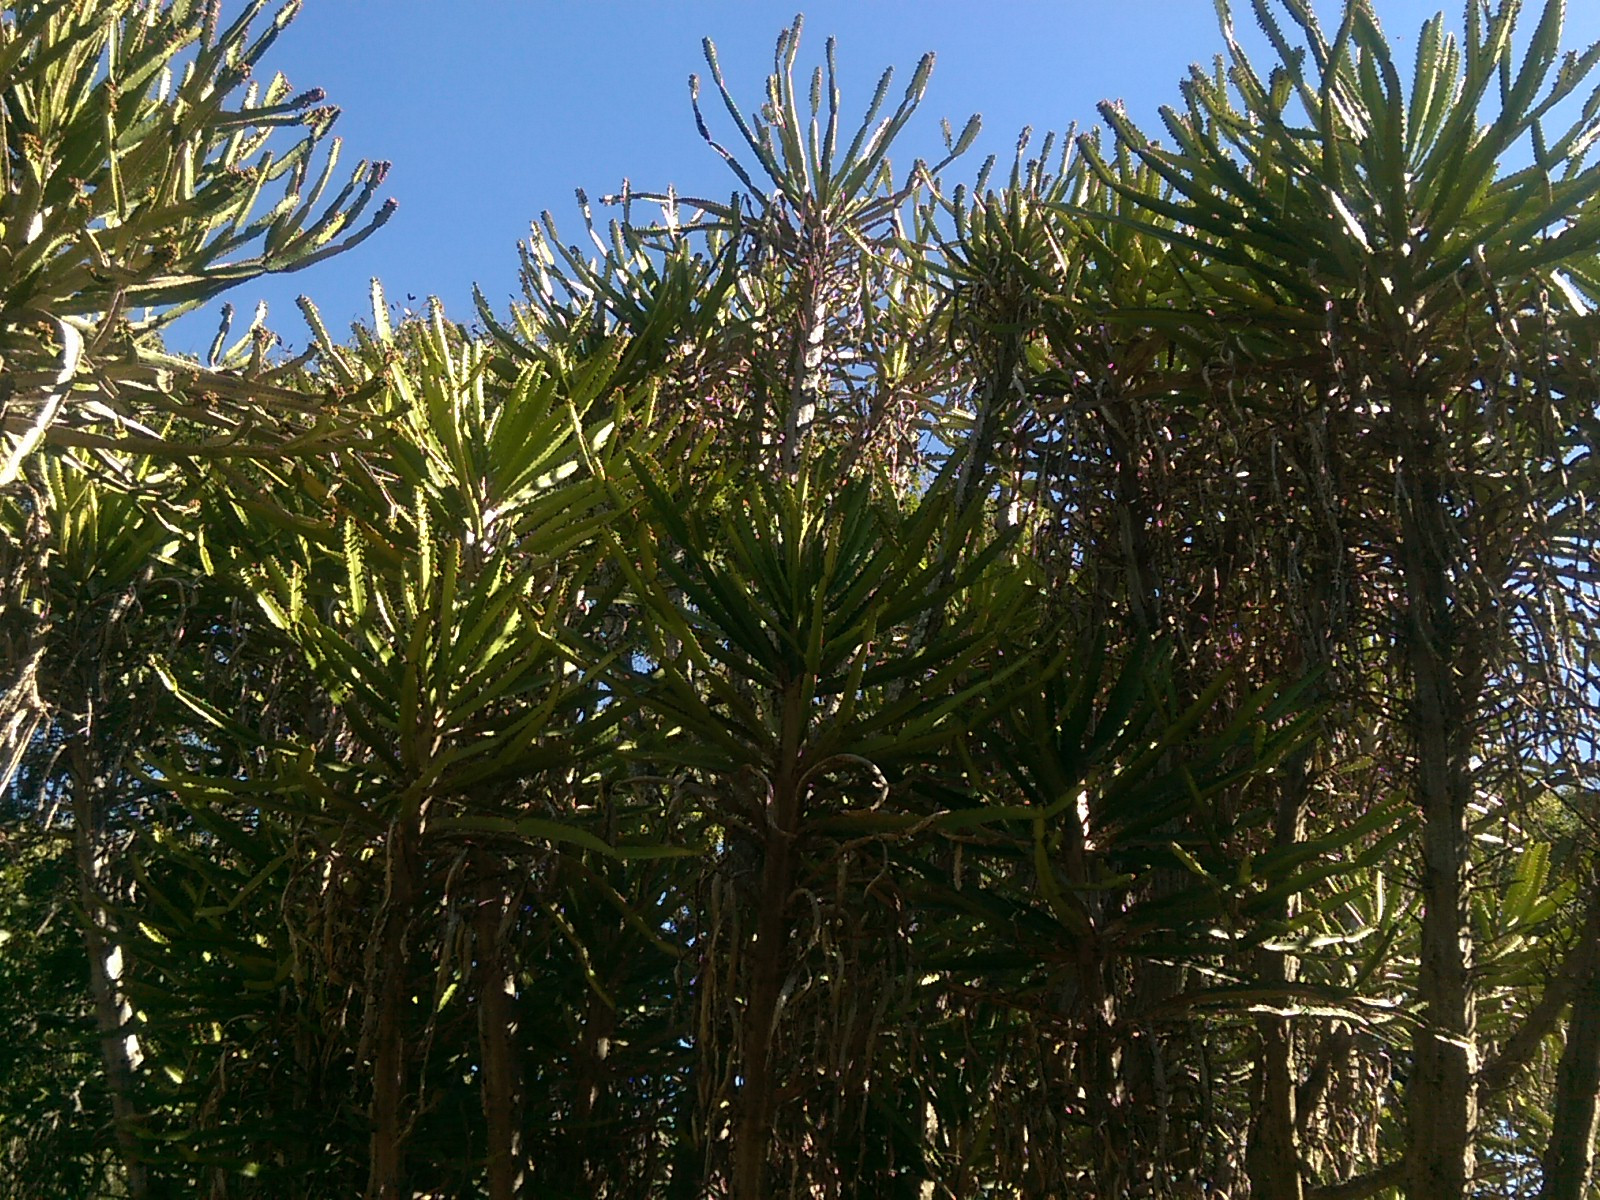 A cluster of spiky trees on a blue sky